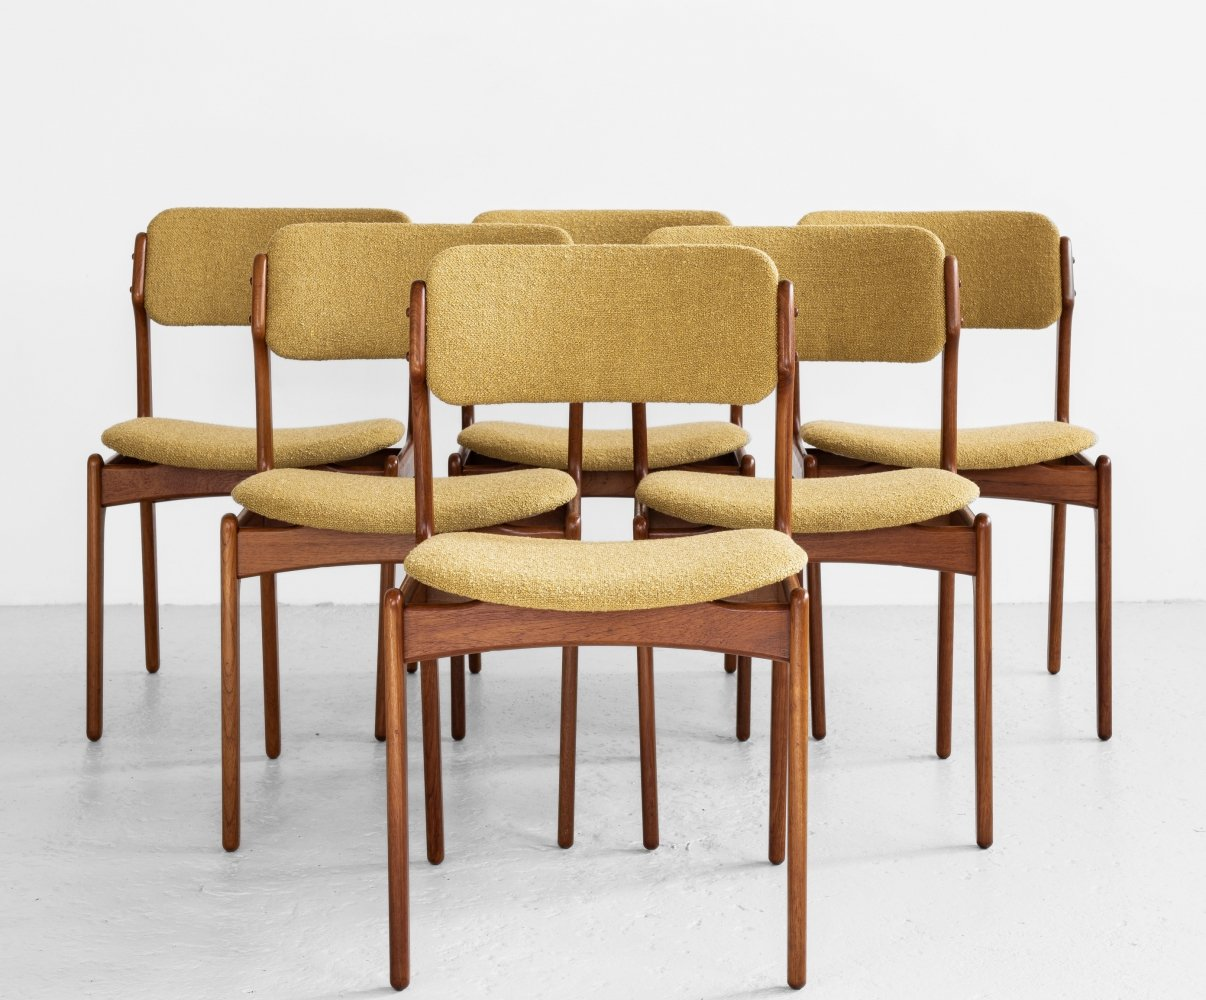 Midcentury Danish set of 6 dining chairs in teak by Erik Buch for OD Møbler, 1960